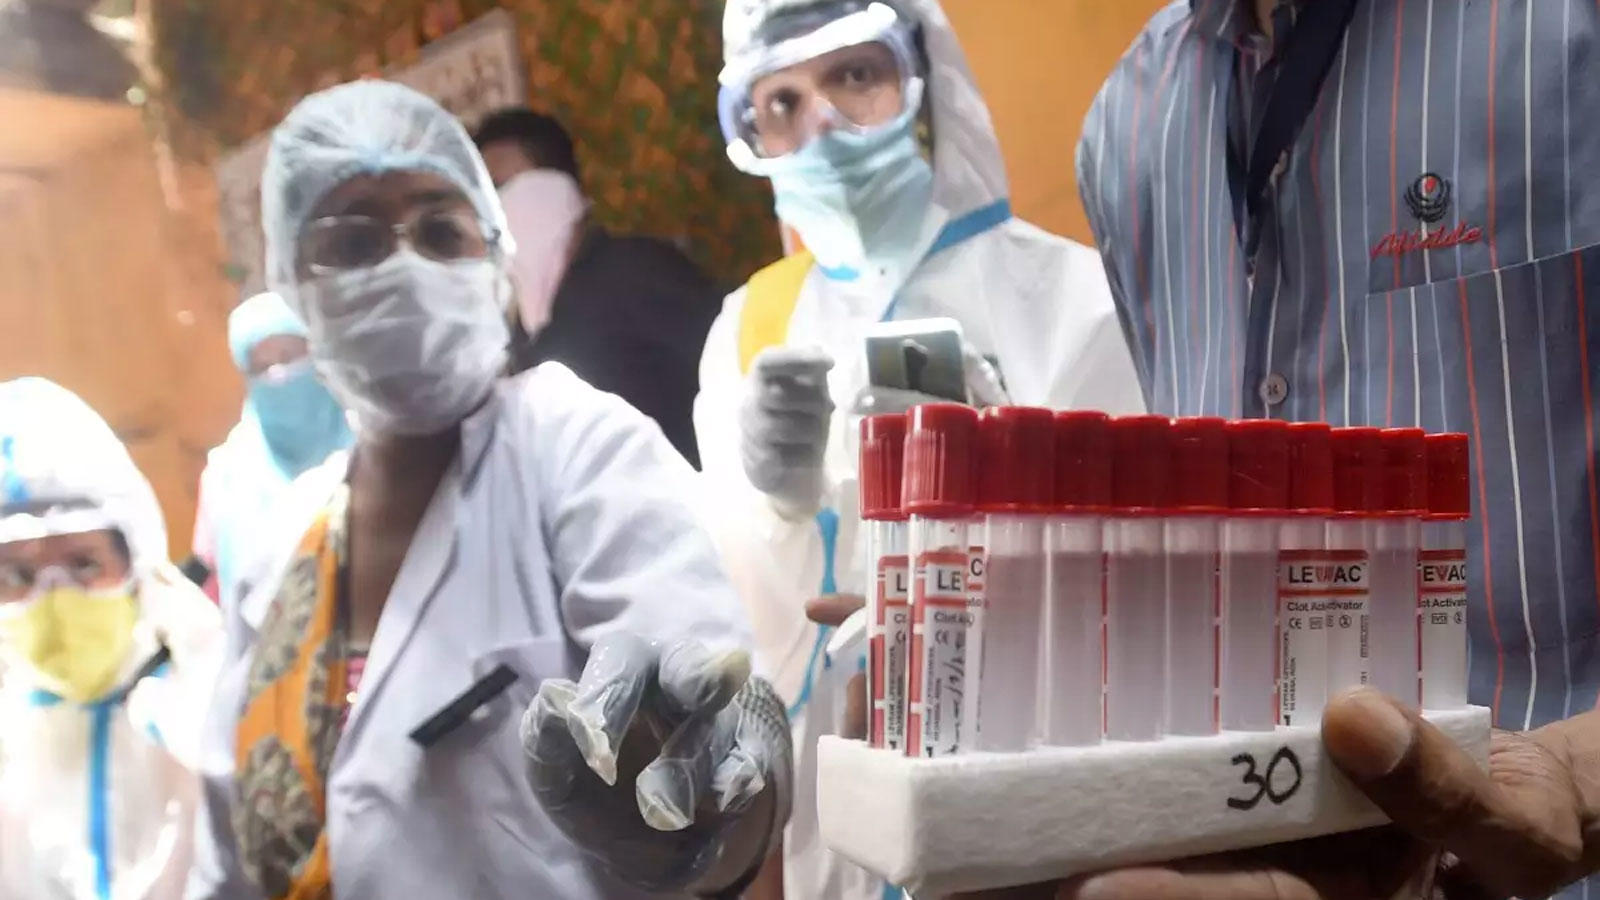 urban-areas-had-higher-sars-cov-2-infection-than-rural-areas-icmr